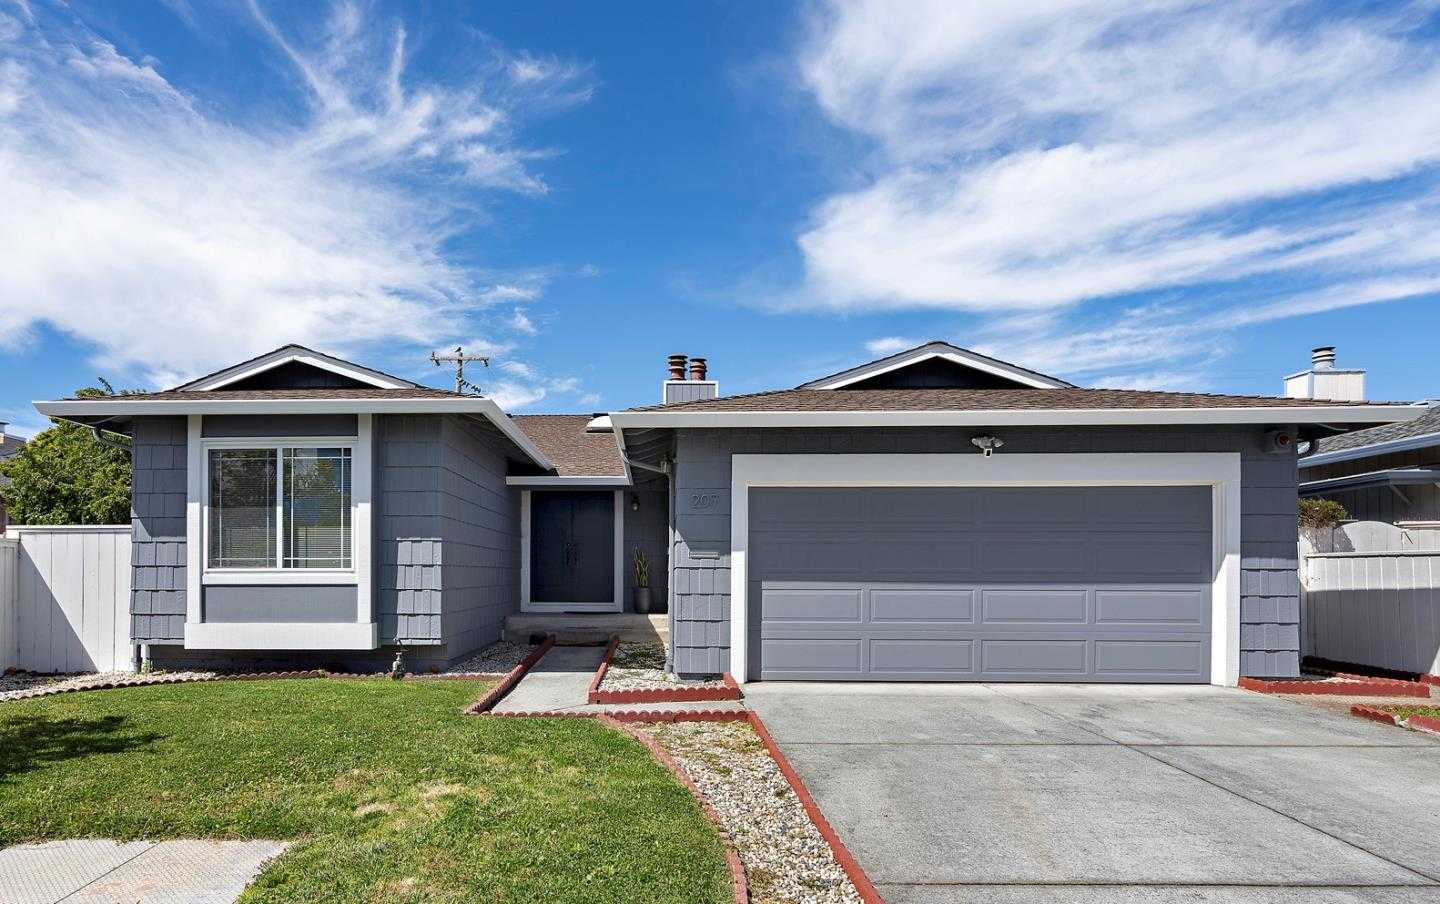 $1,379,000 - 3Br/2Ba -  for Sale in San Mateo